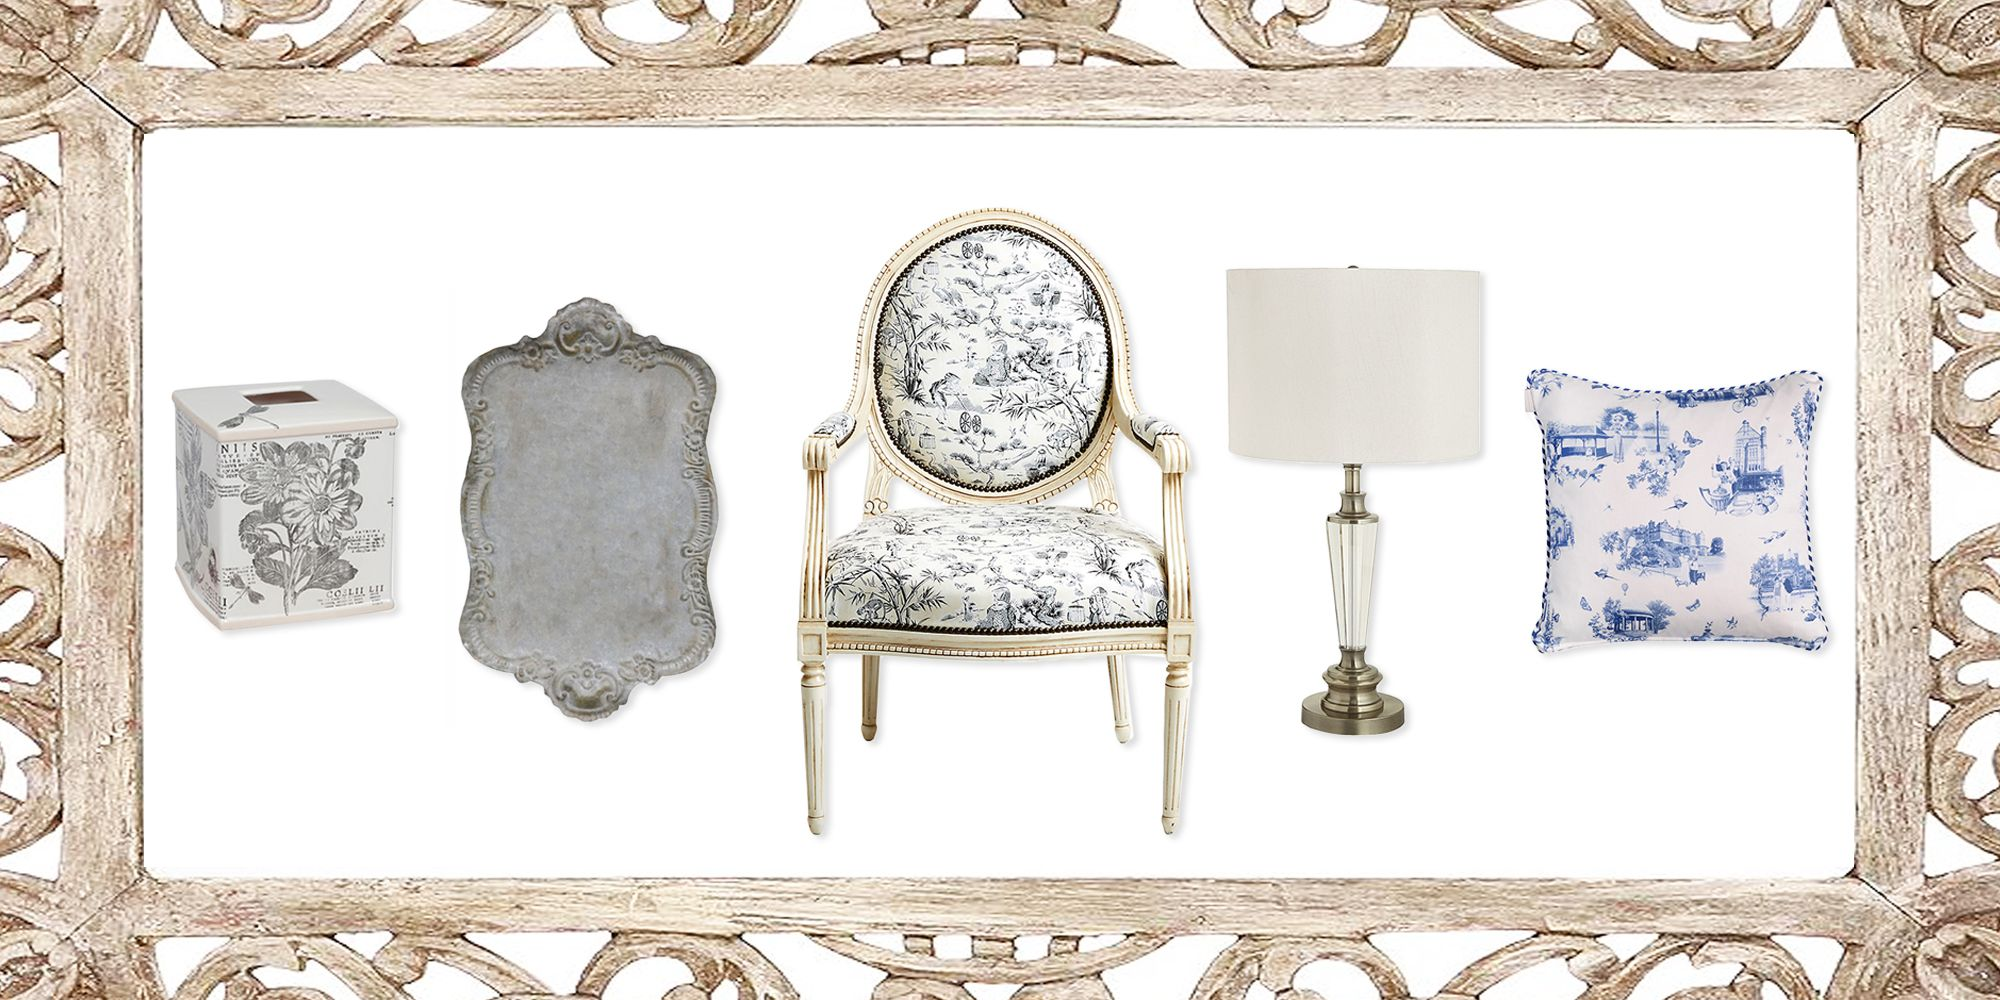 12 Best French Country Decor Picks 2018 - Chic French ...